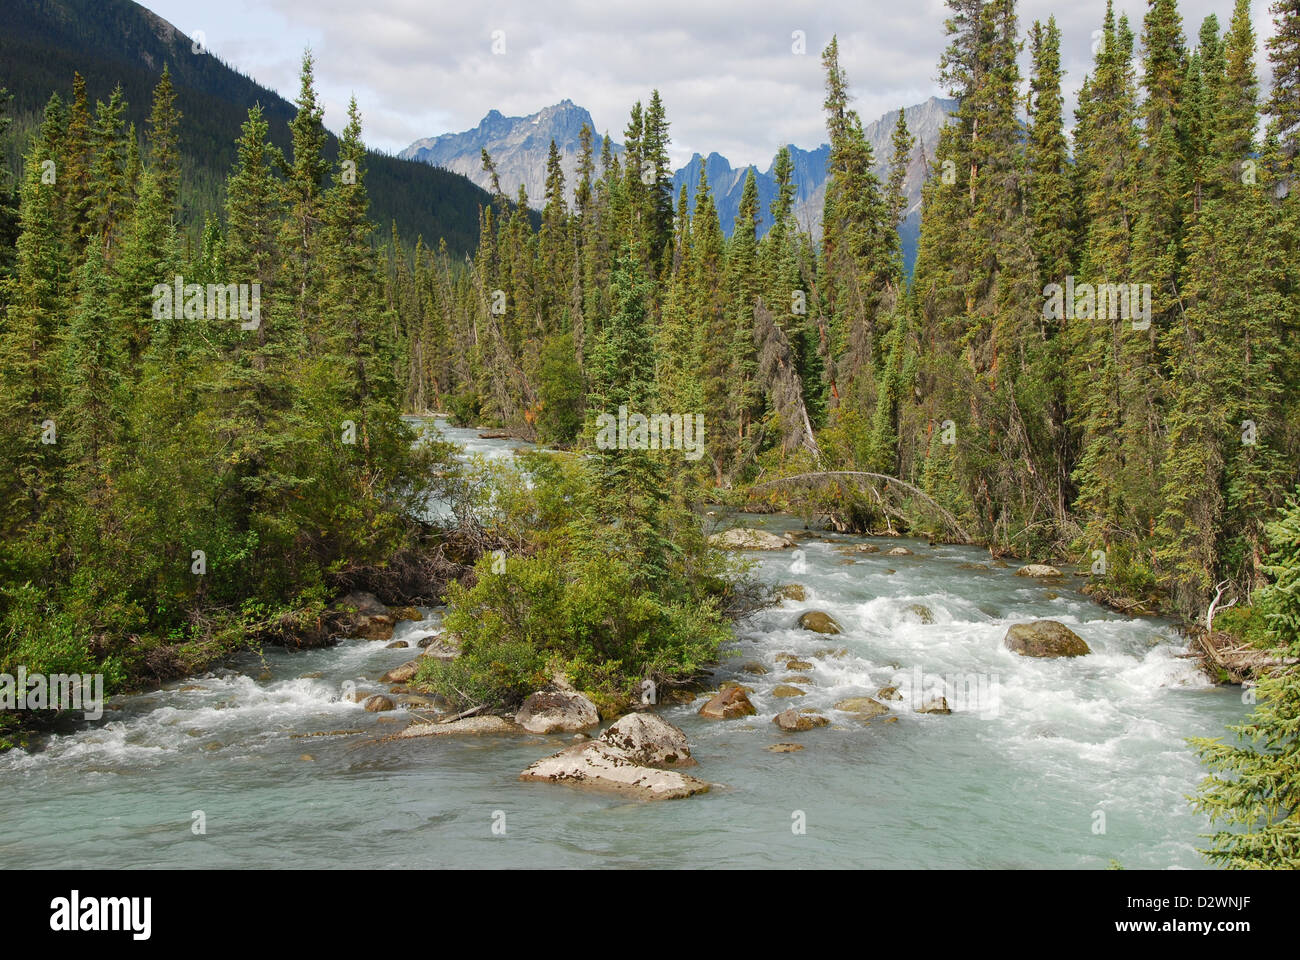 Brintnell Creek and the Ragged Range in Canada's Northwest Territories. - Stock Image